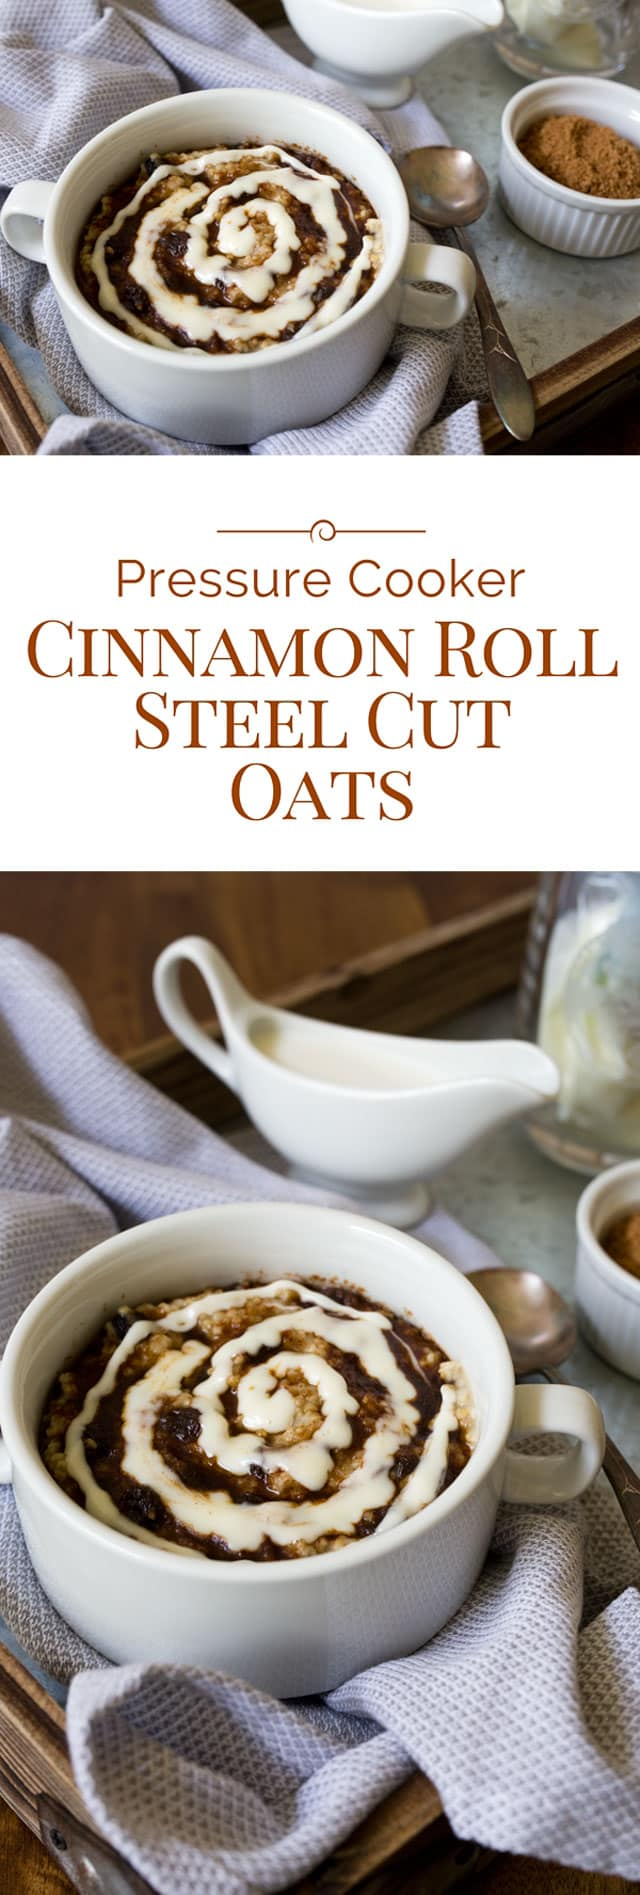 Pressure Cooker (Instant Pot) Cinnamon Roll Steel Cut Oats